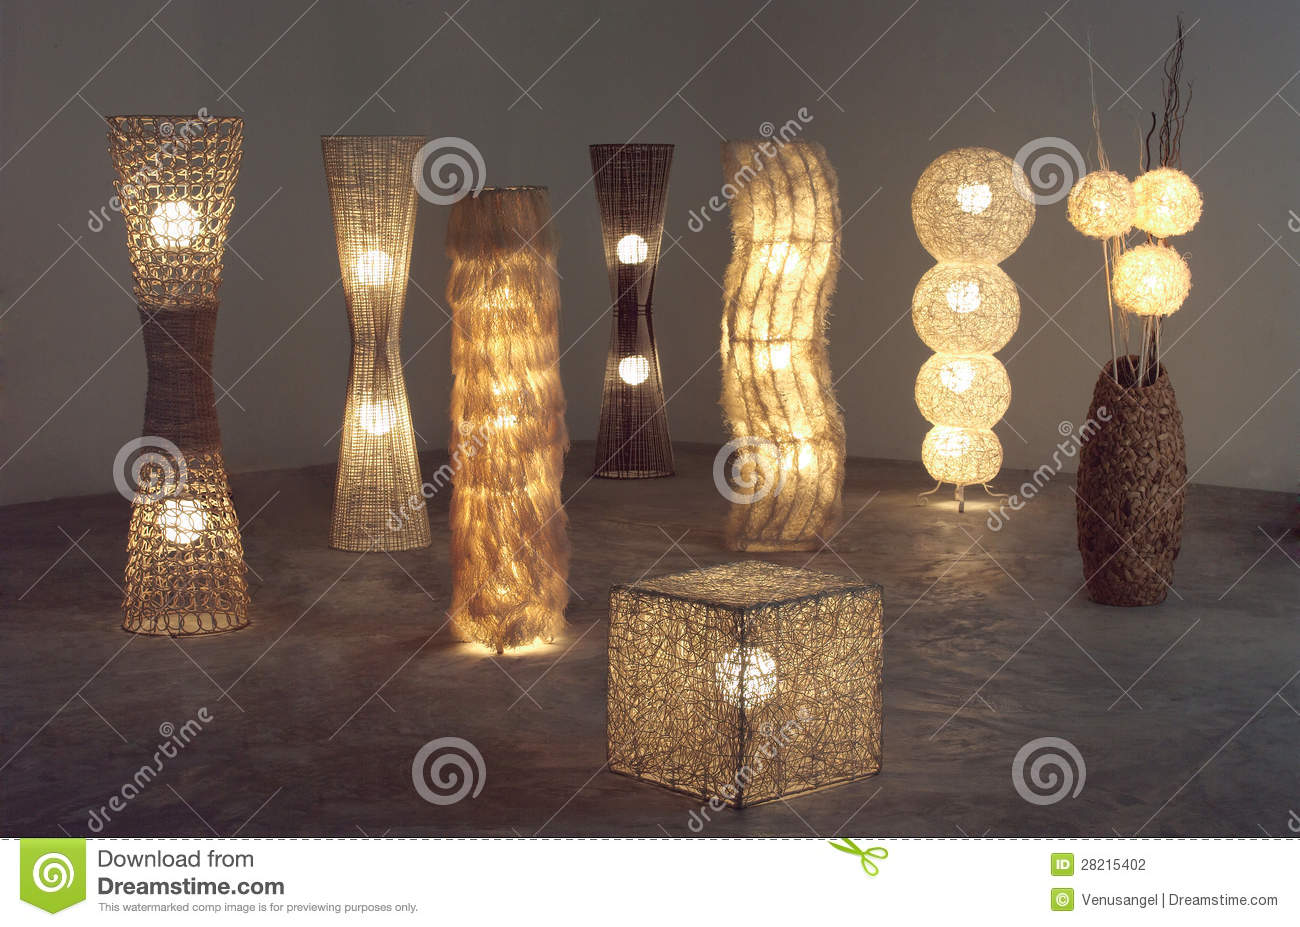 heel wat verlicht staand lampen die van rotan bamboe en droge waterhyacint maakten stock foto. Black Bedroom Furniture Sets. Home Design Ideas